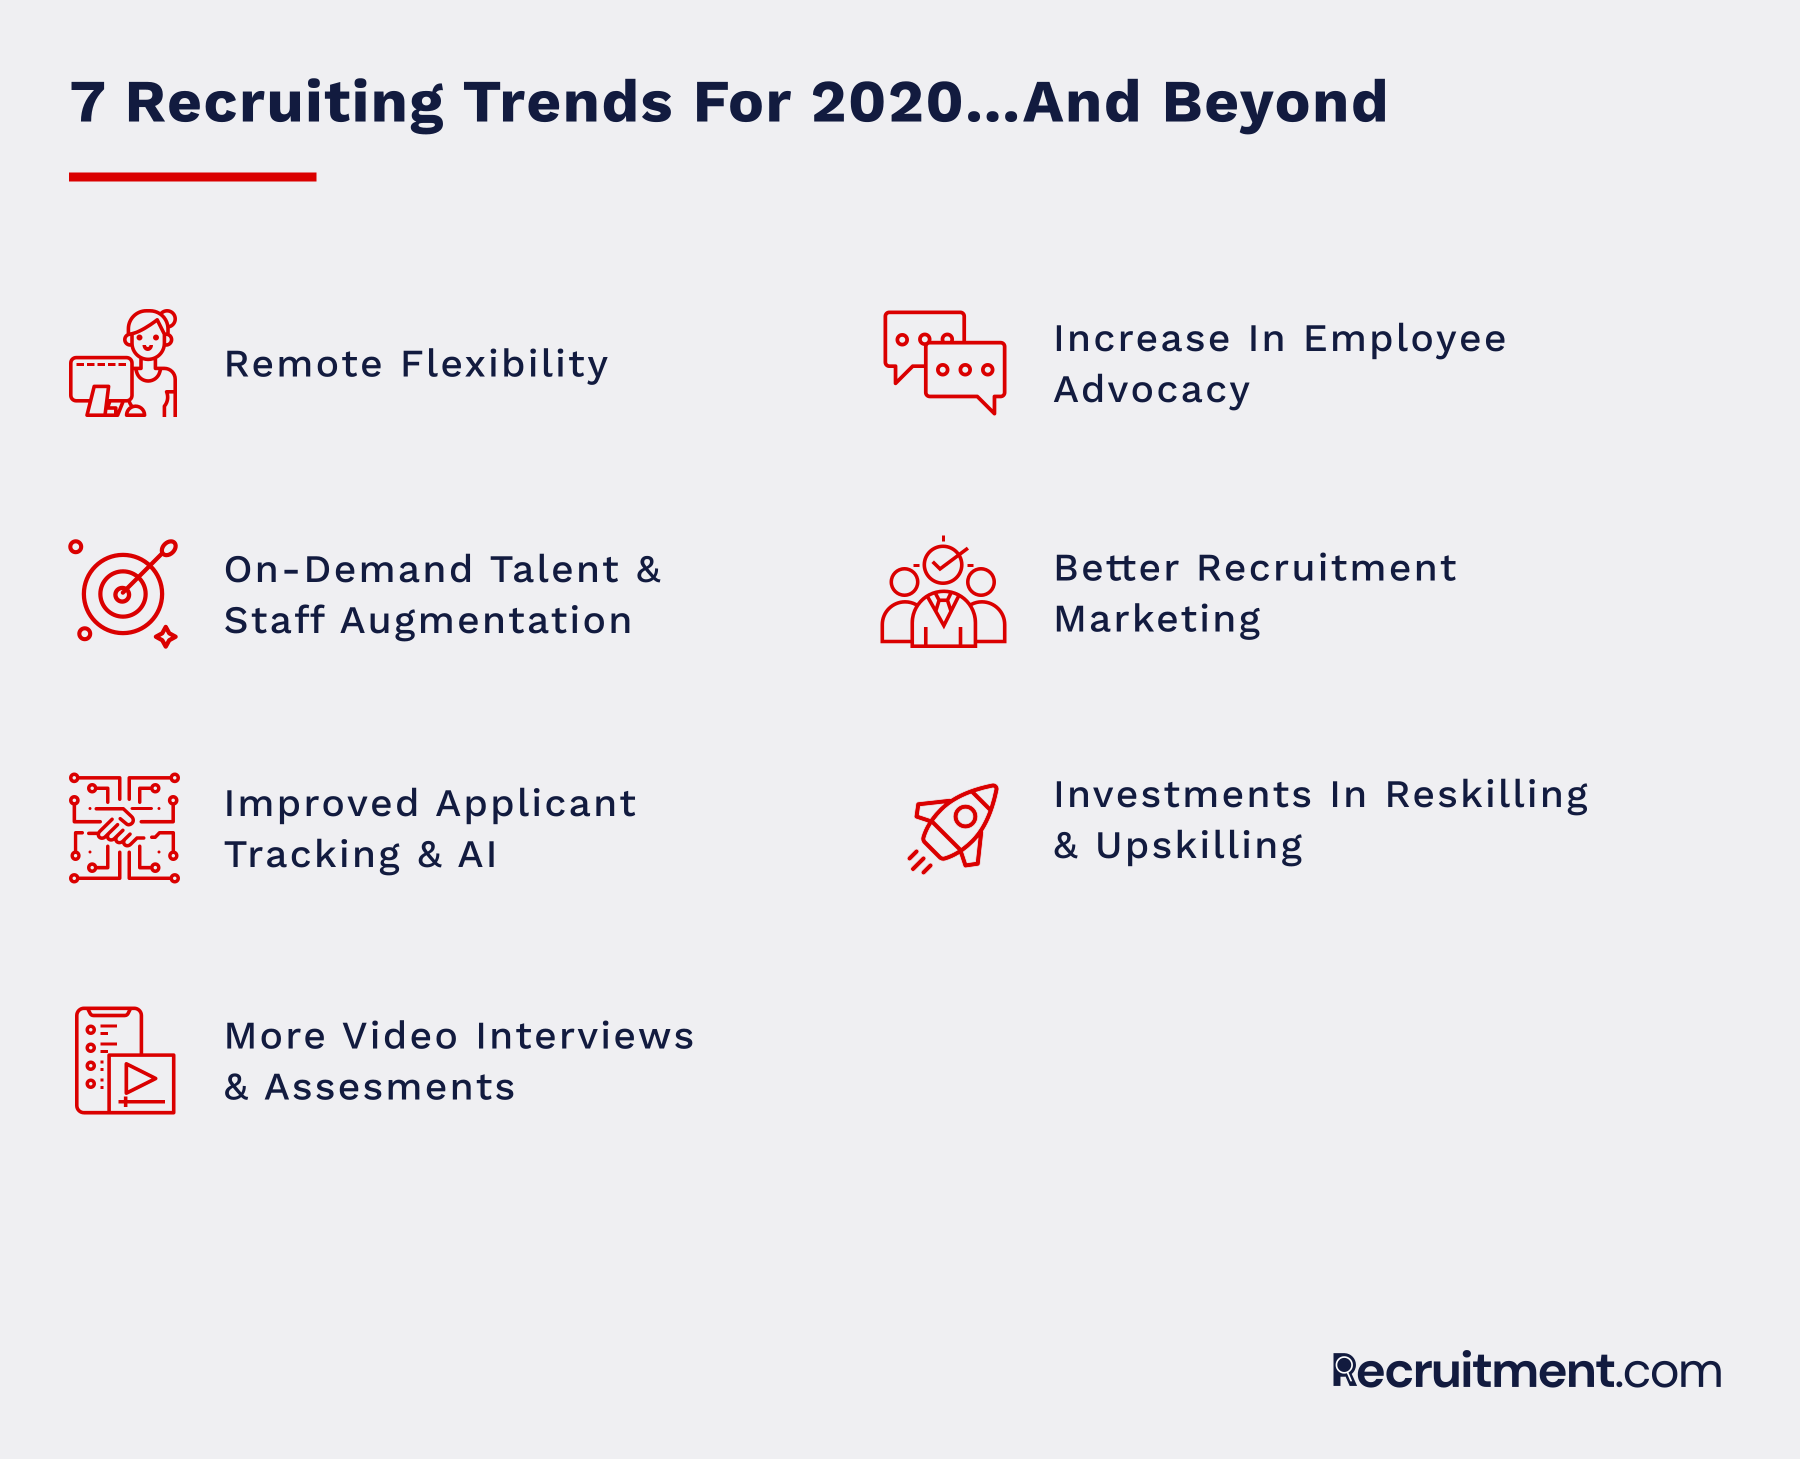 7 Recruiting Trends For 2020... And Beyond